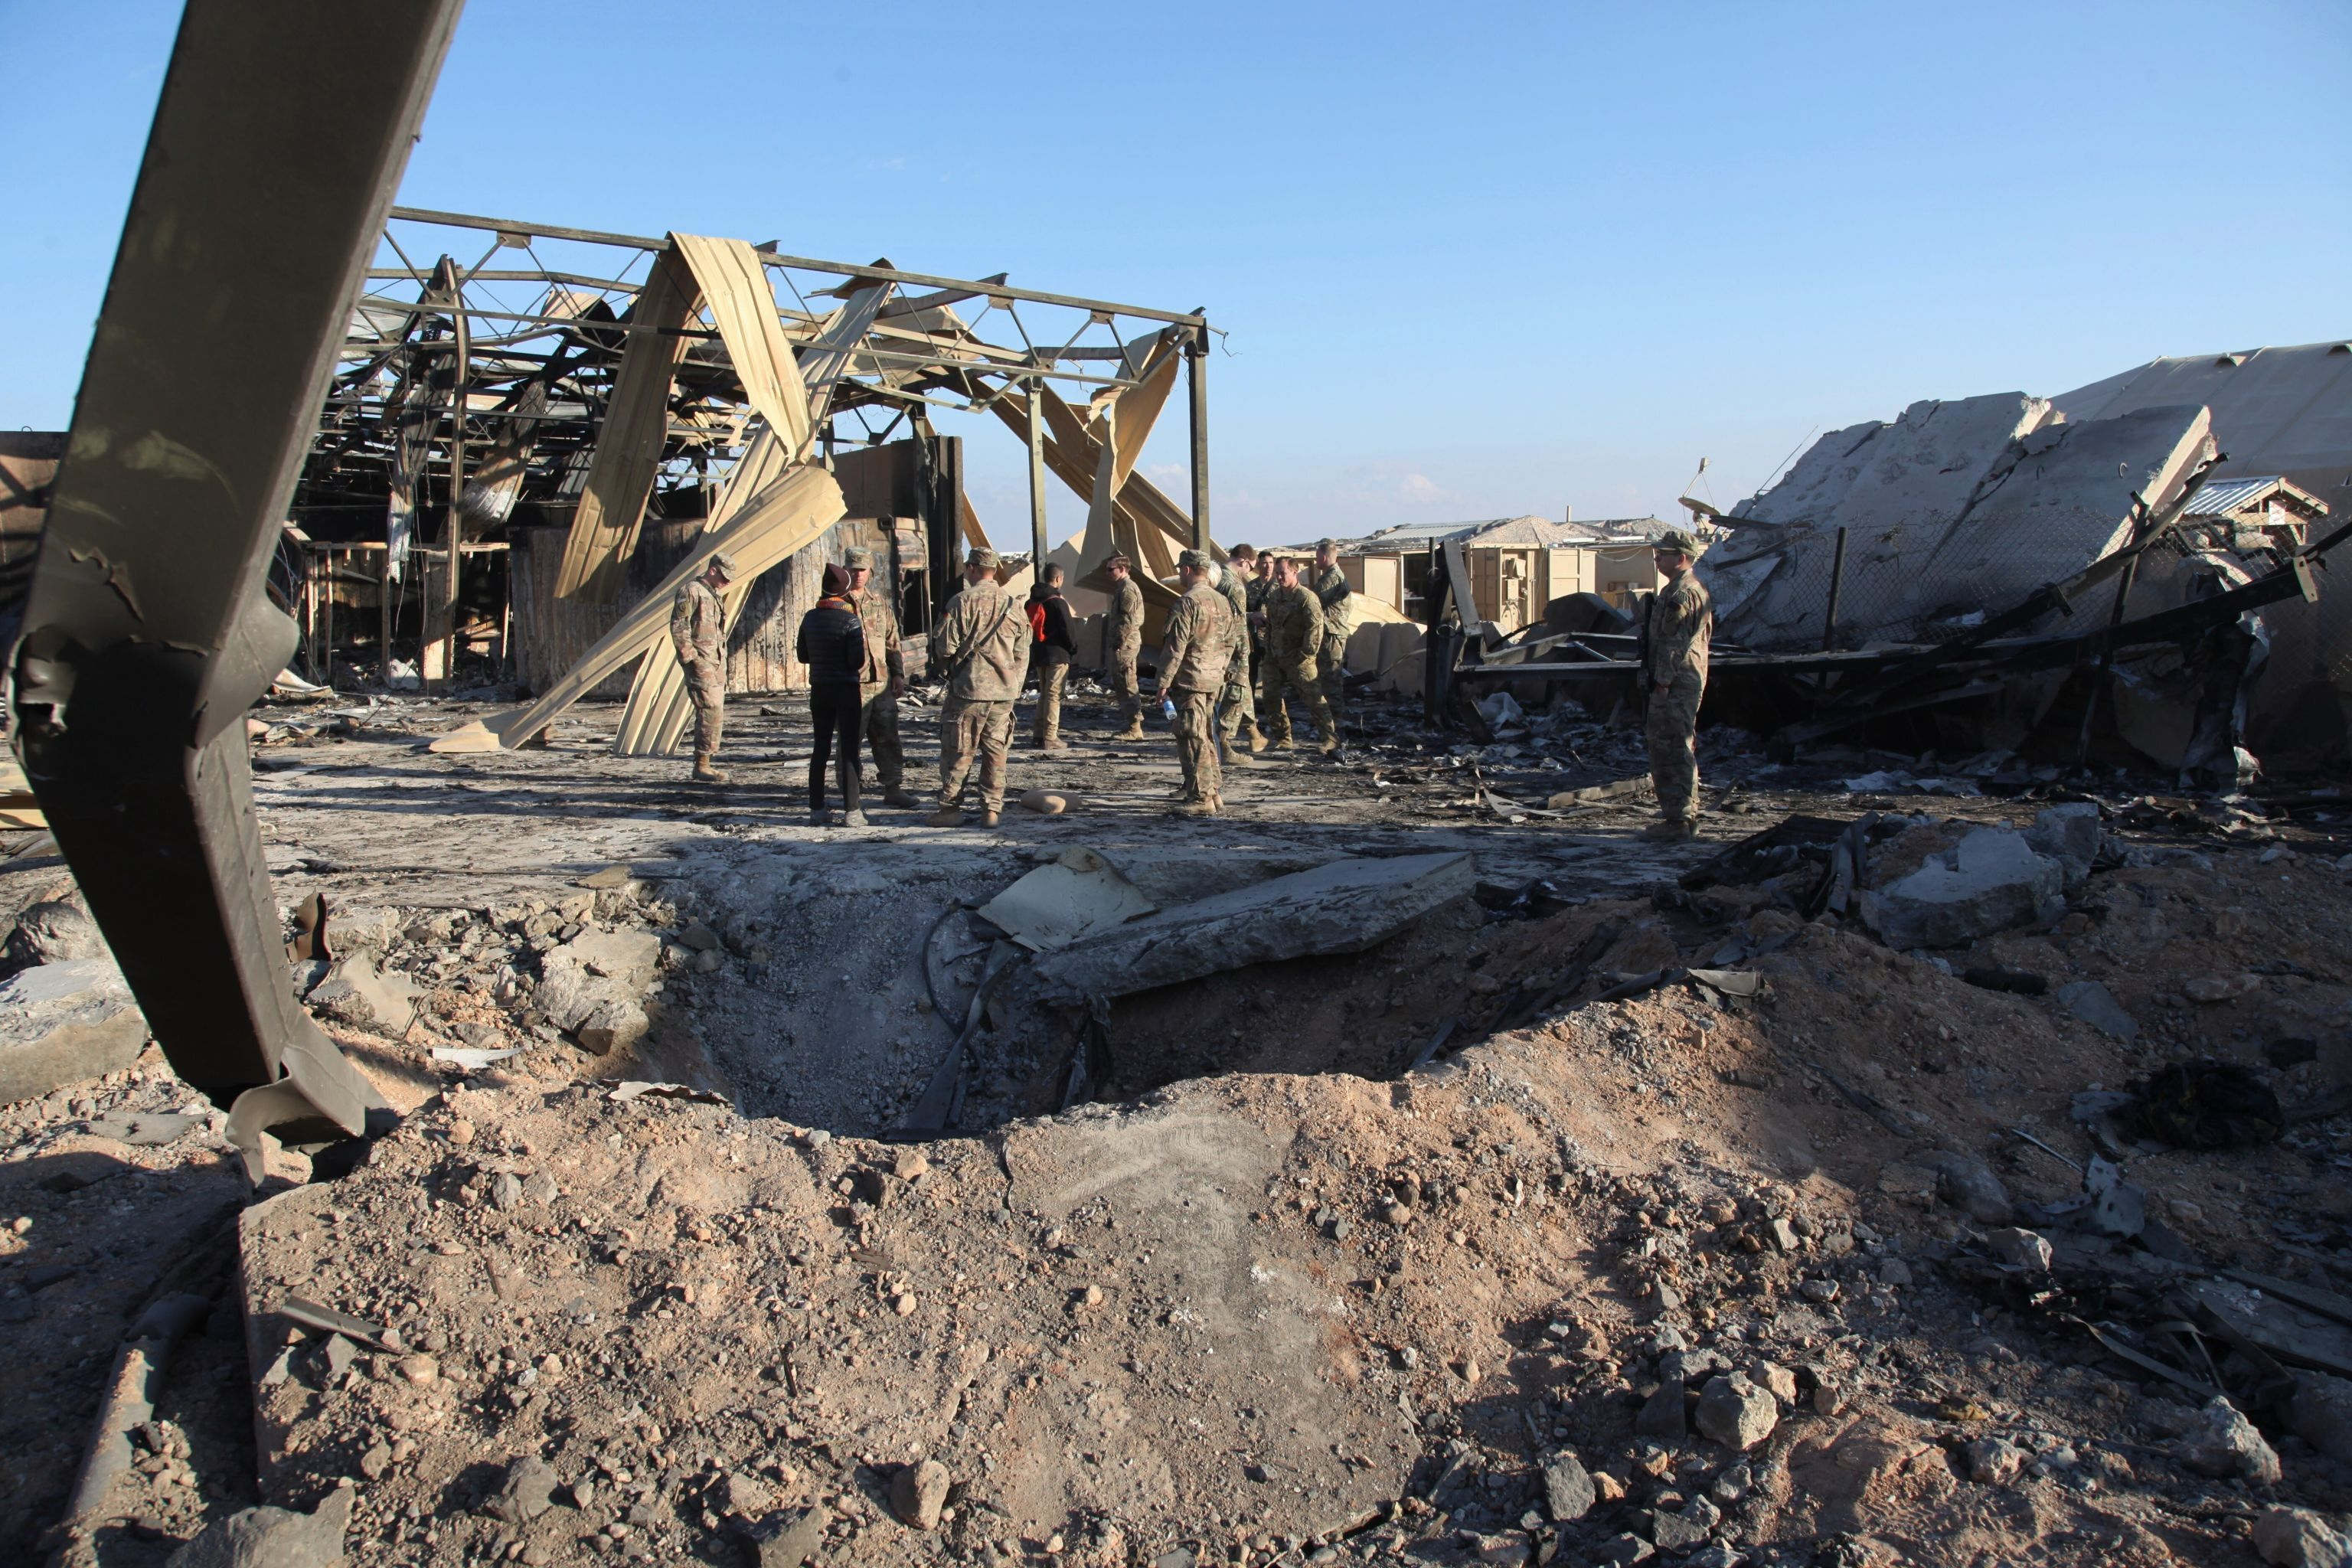 In this Monday, Jan. 13, 2020 photo, U.S. Soldiers stand at spot hit by Iranian bombing at Ain al-Asad air base, in Anbar, Iraq